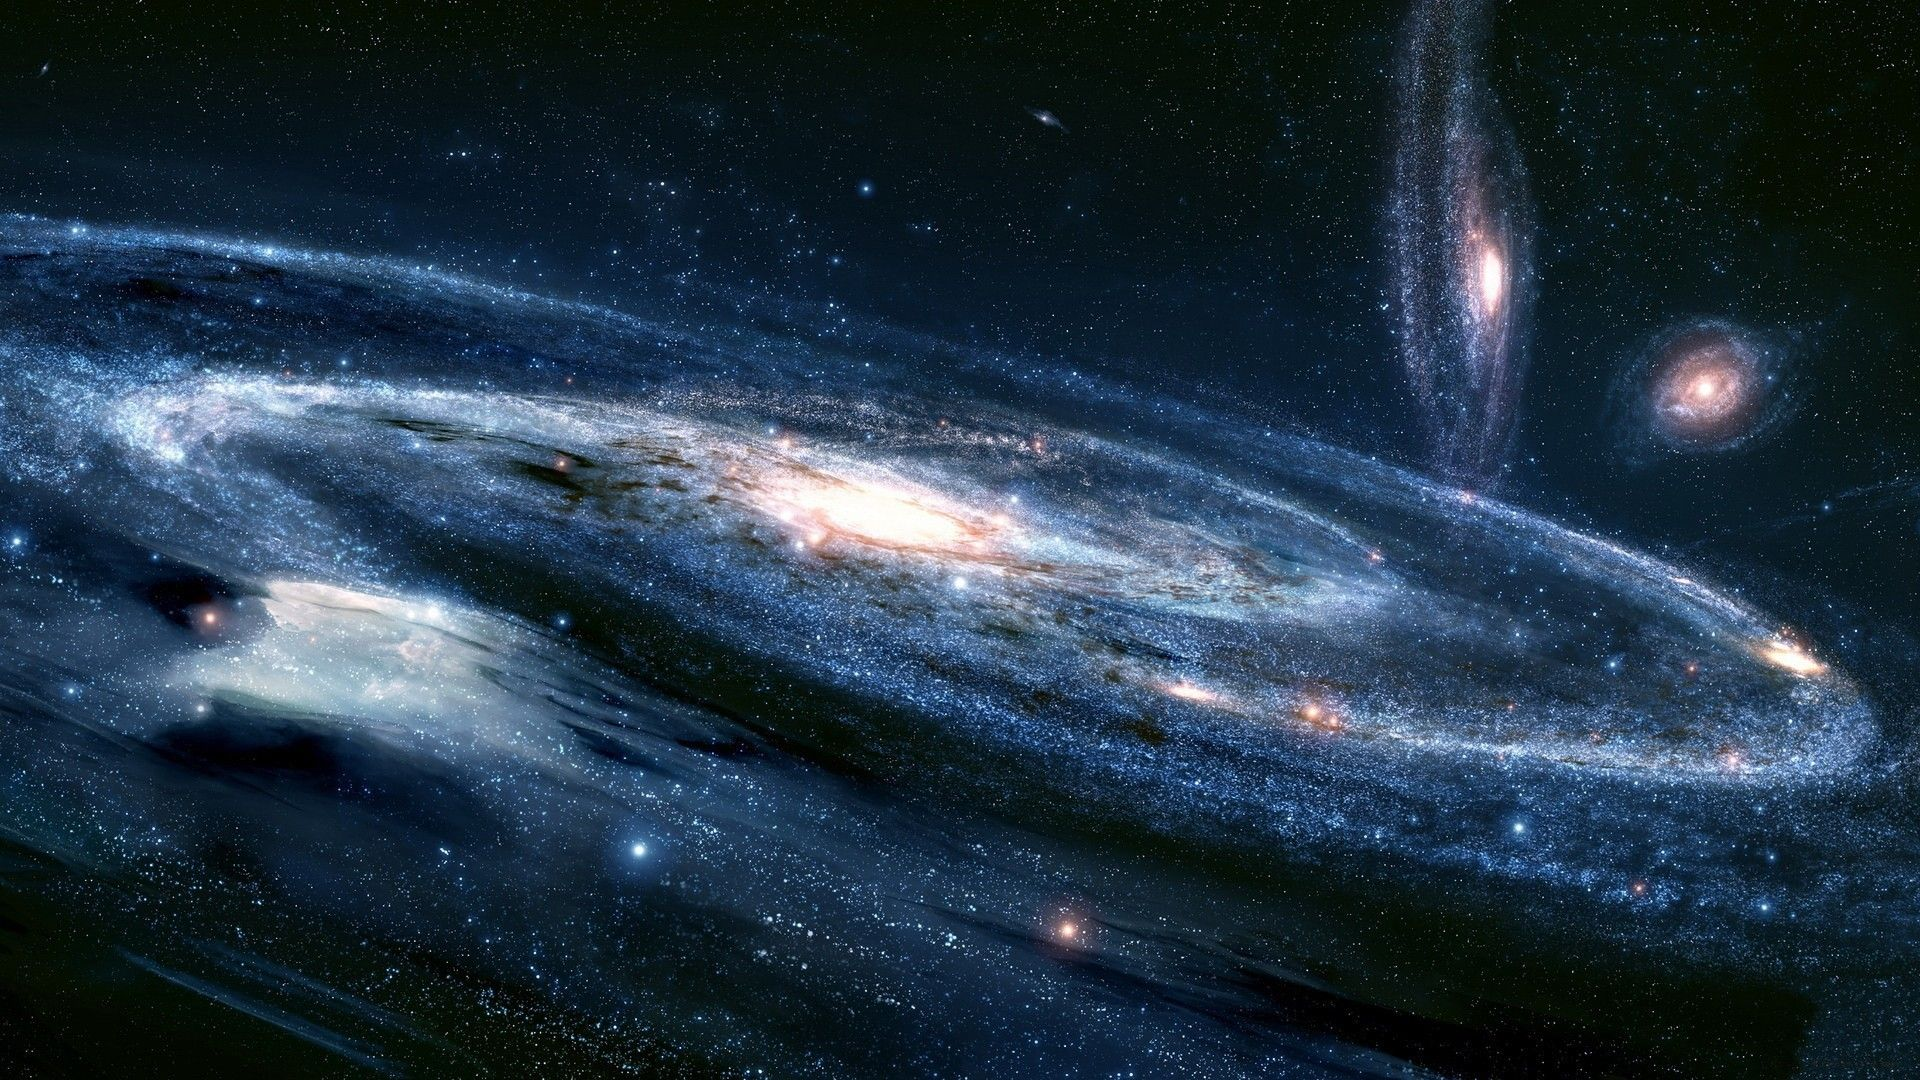 Outer Space Galaxy Wallpaper Widescreen 2 HD Wallpapers